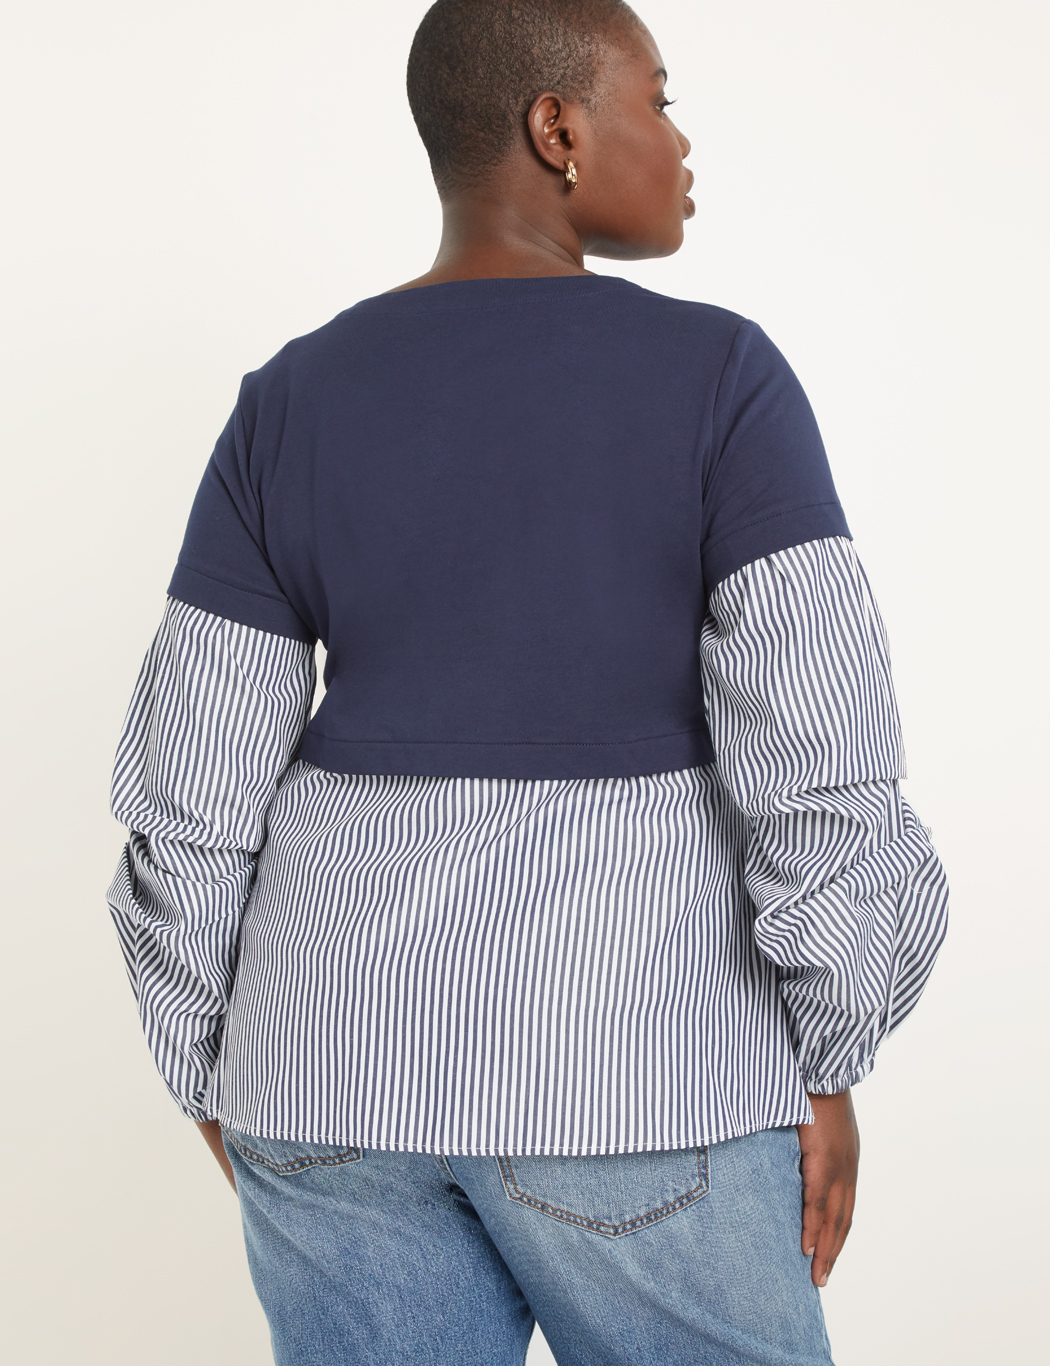 Crewneck Two-Fer Top with Dramatic Sleeve